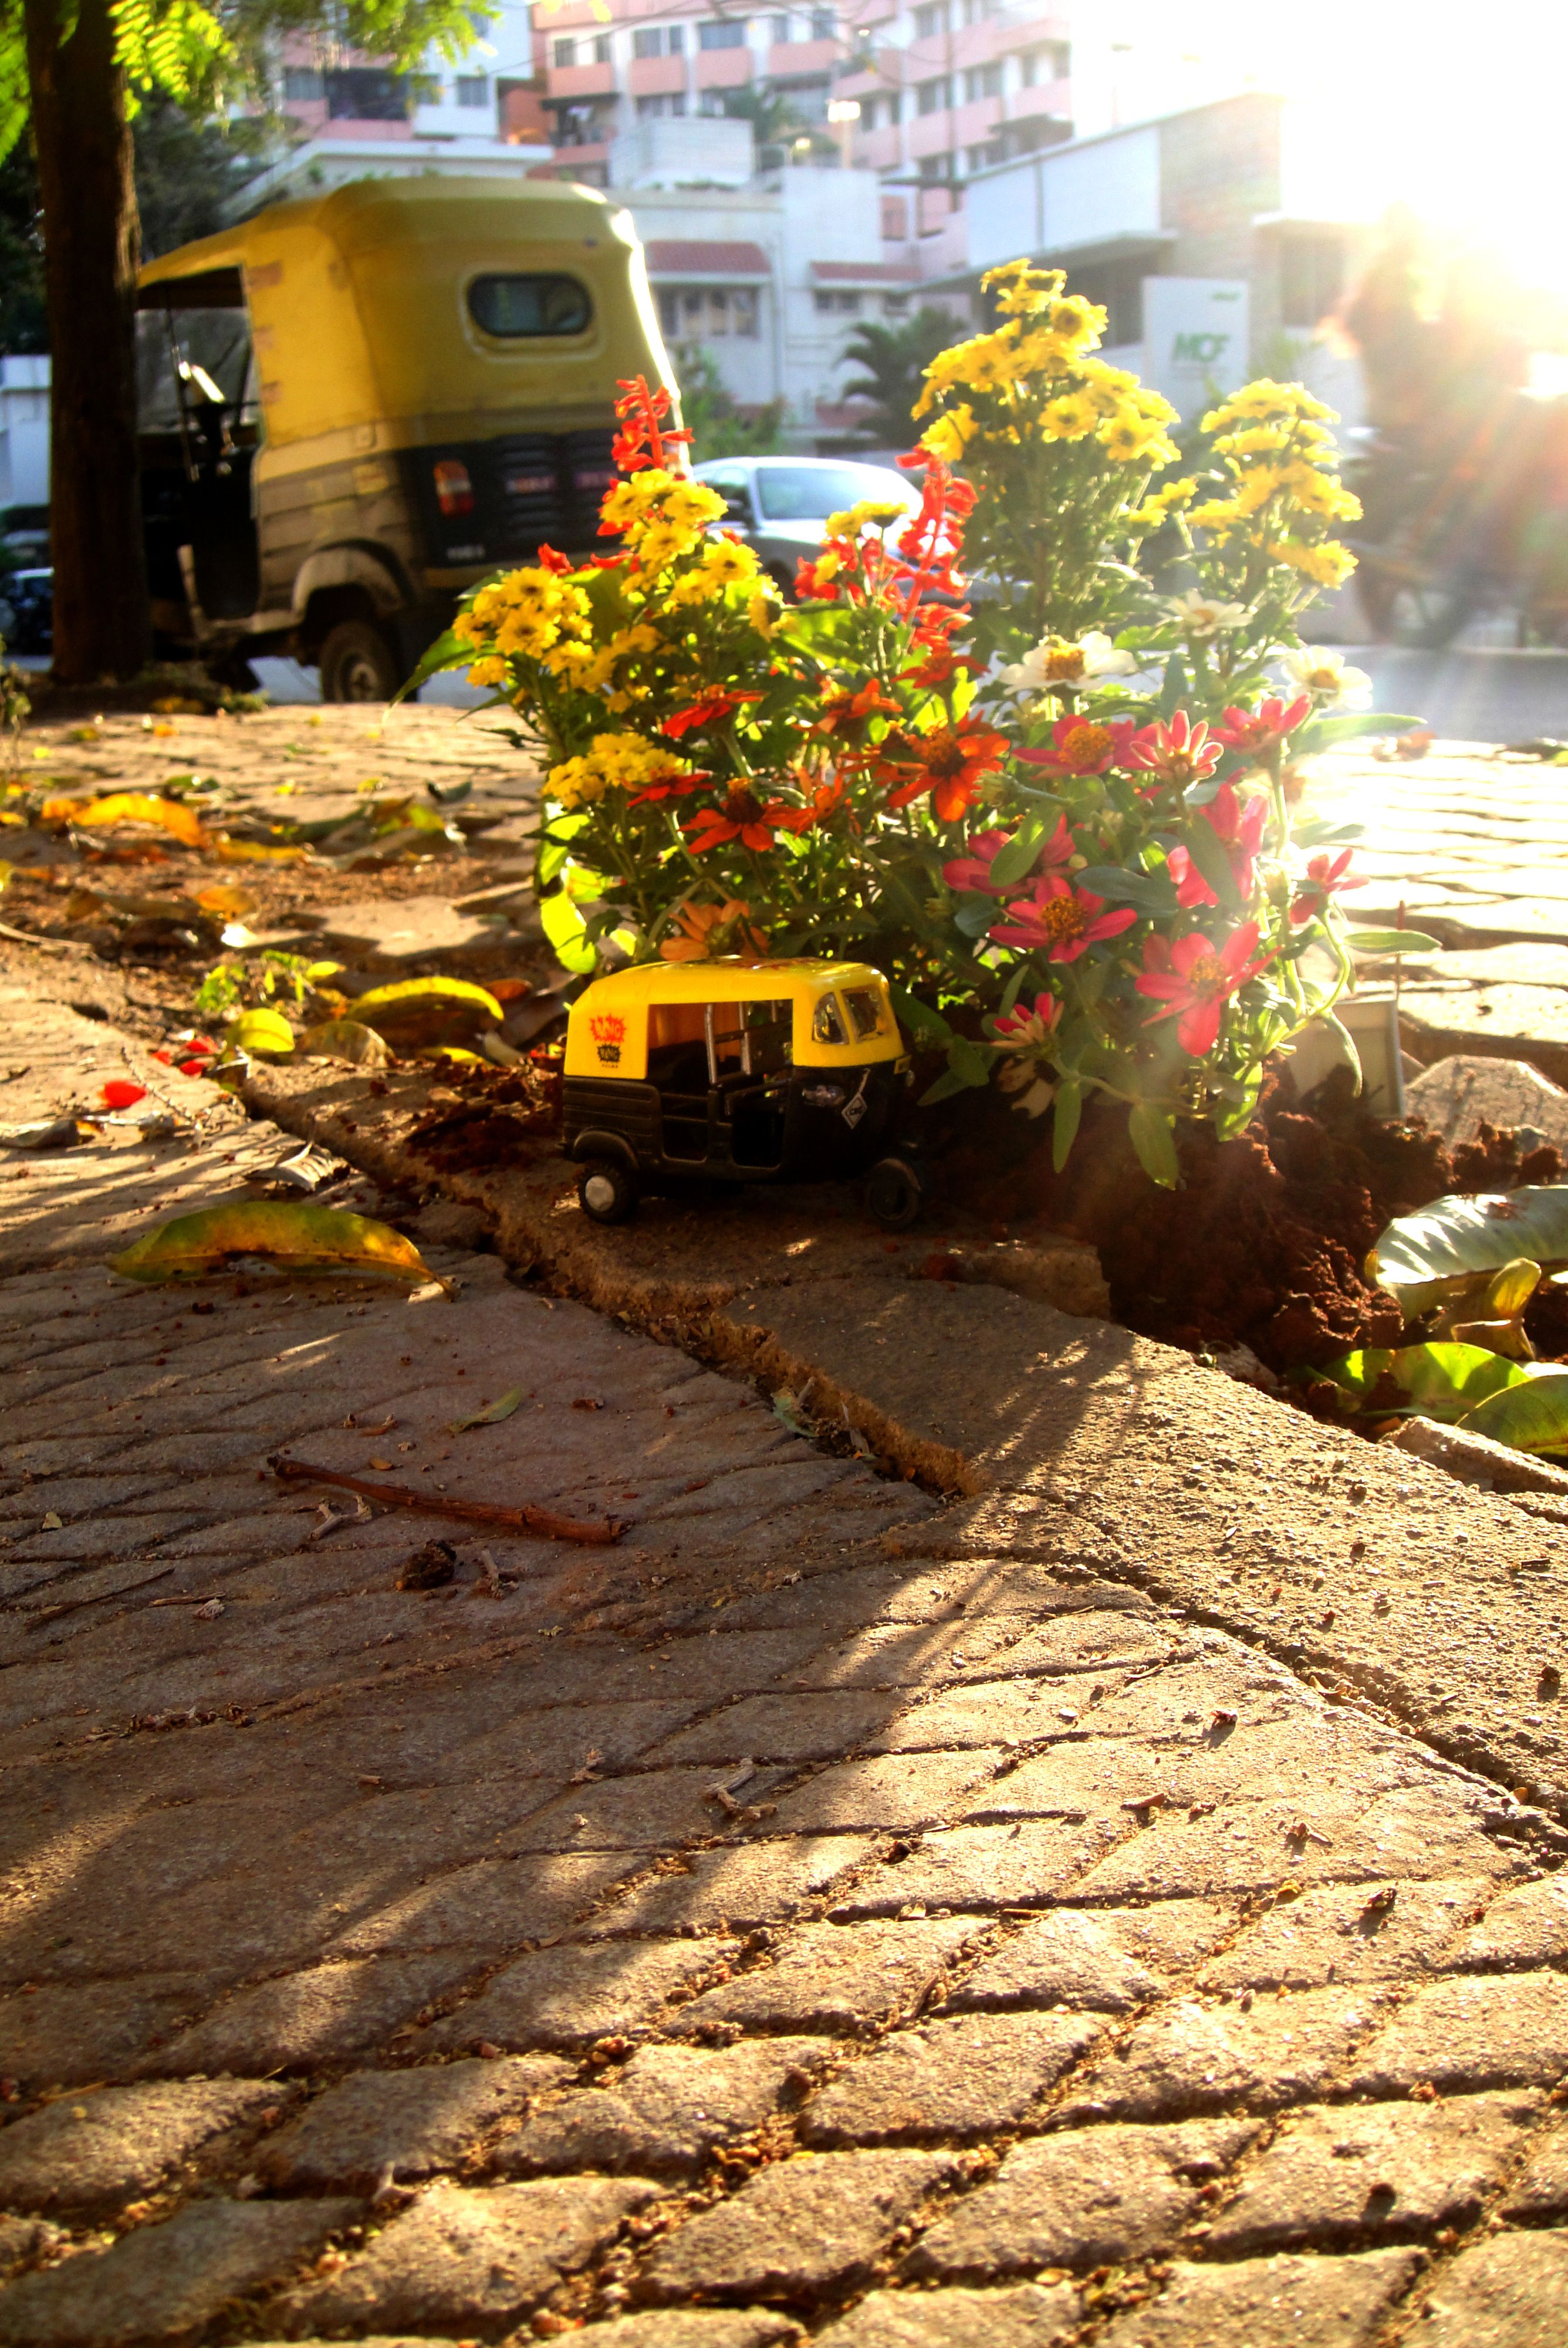 guerrilla pothole gardening - steve wheen | Art makes the world go ...